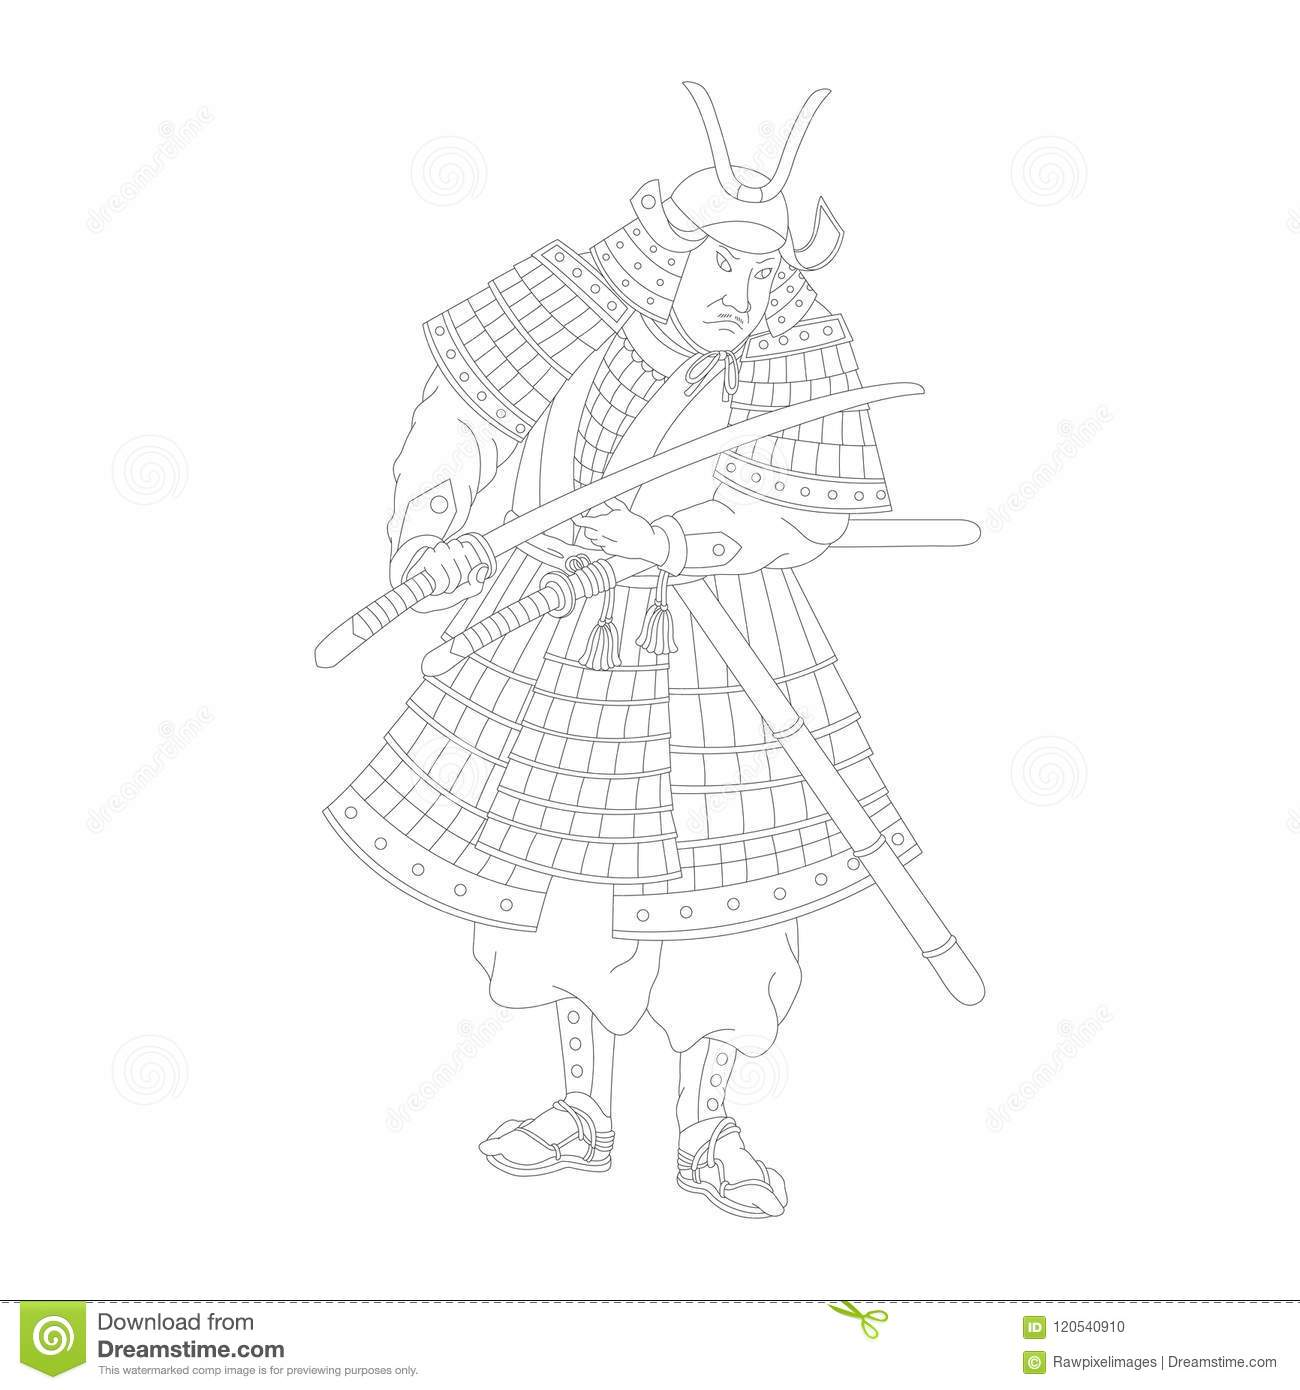 Samurai Japanese Warrior Adult Coloring Page Stock Vector Illustration Of Pattern Detailed 120540910